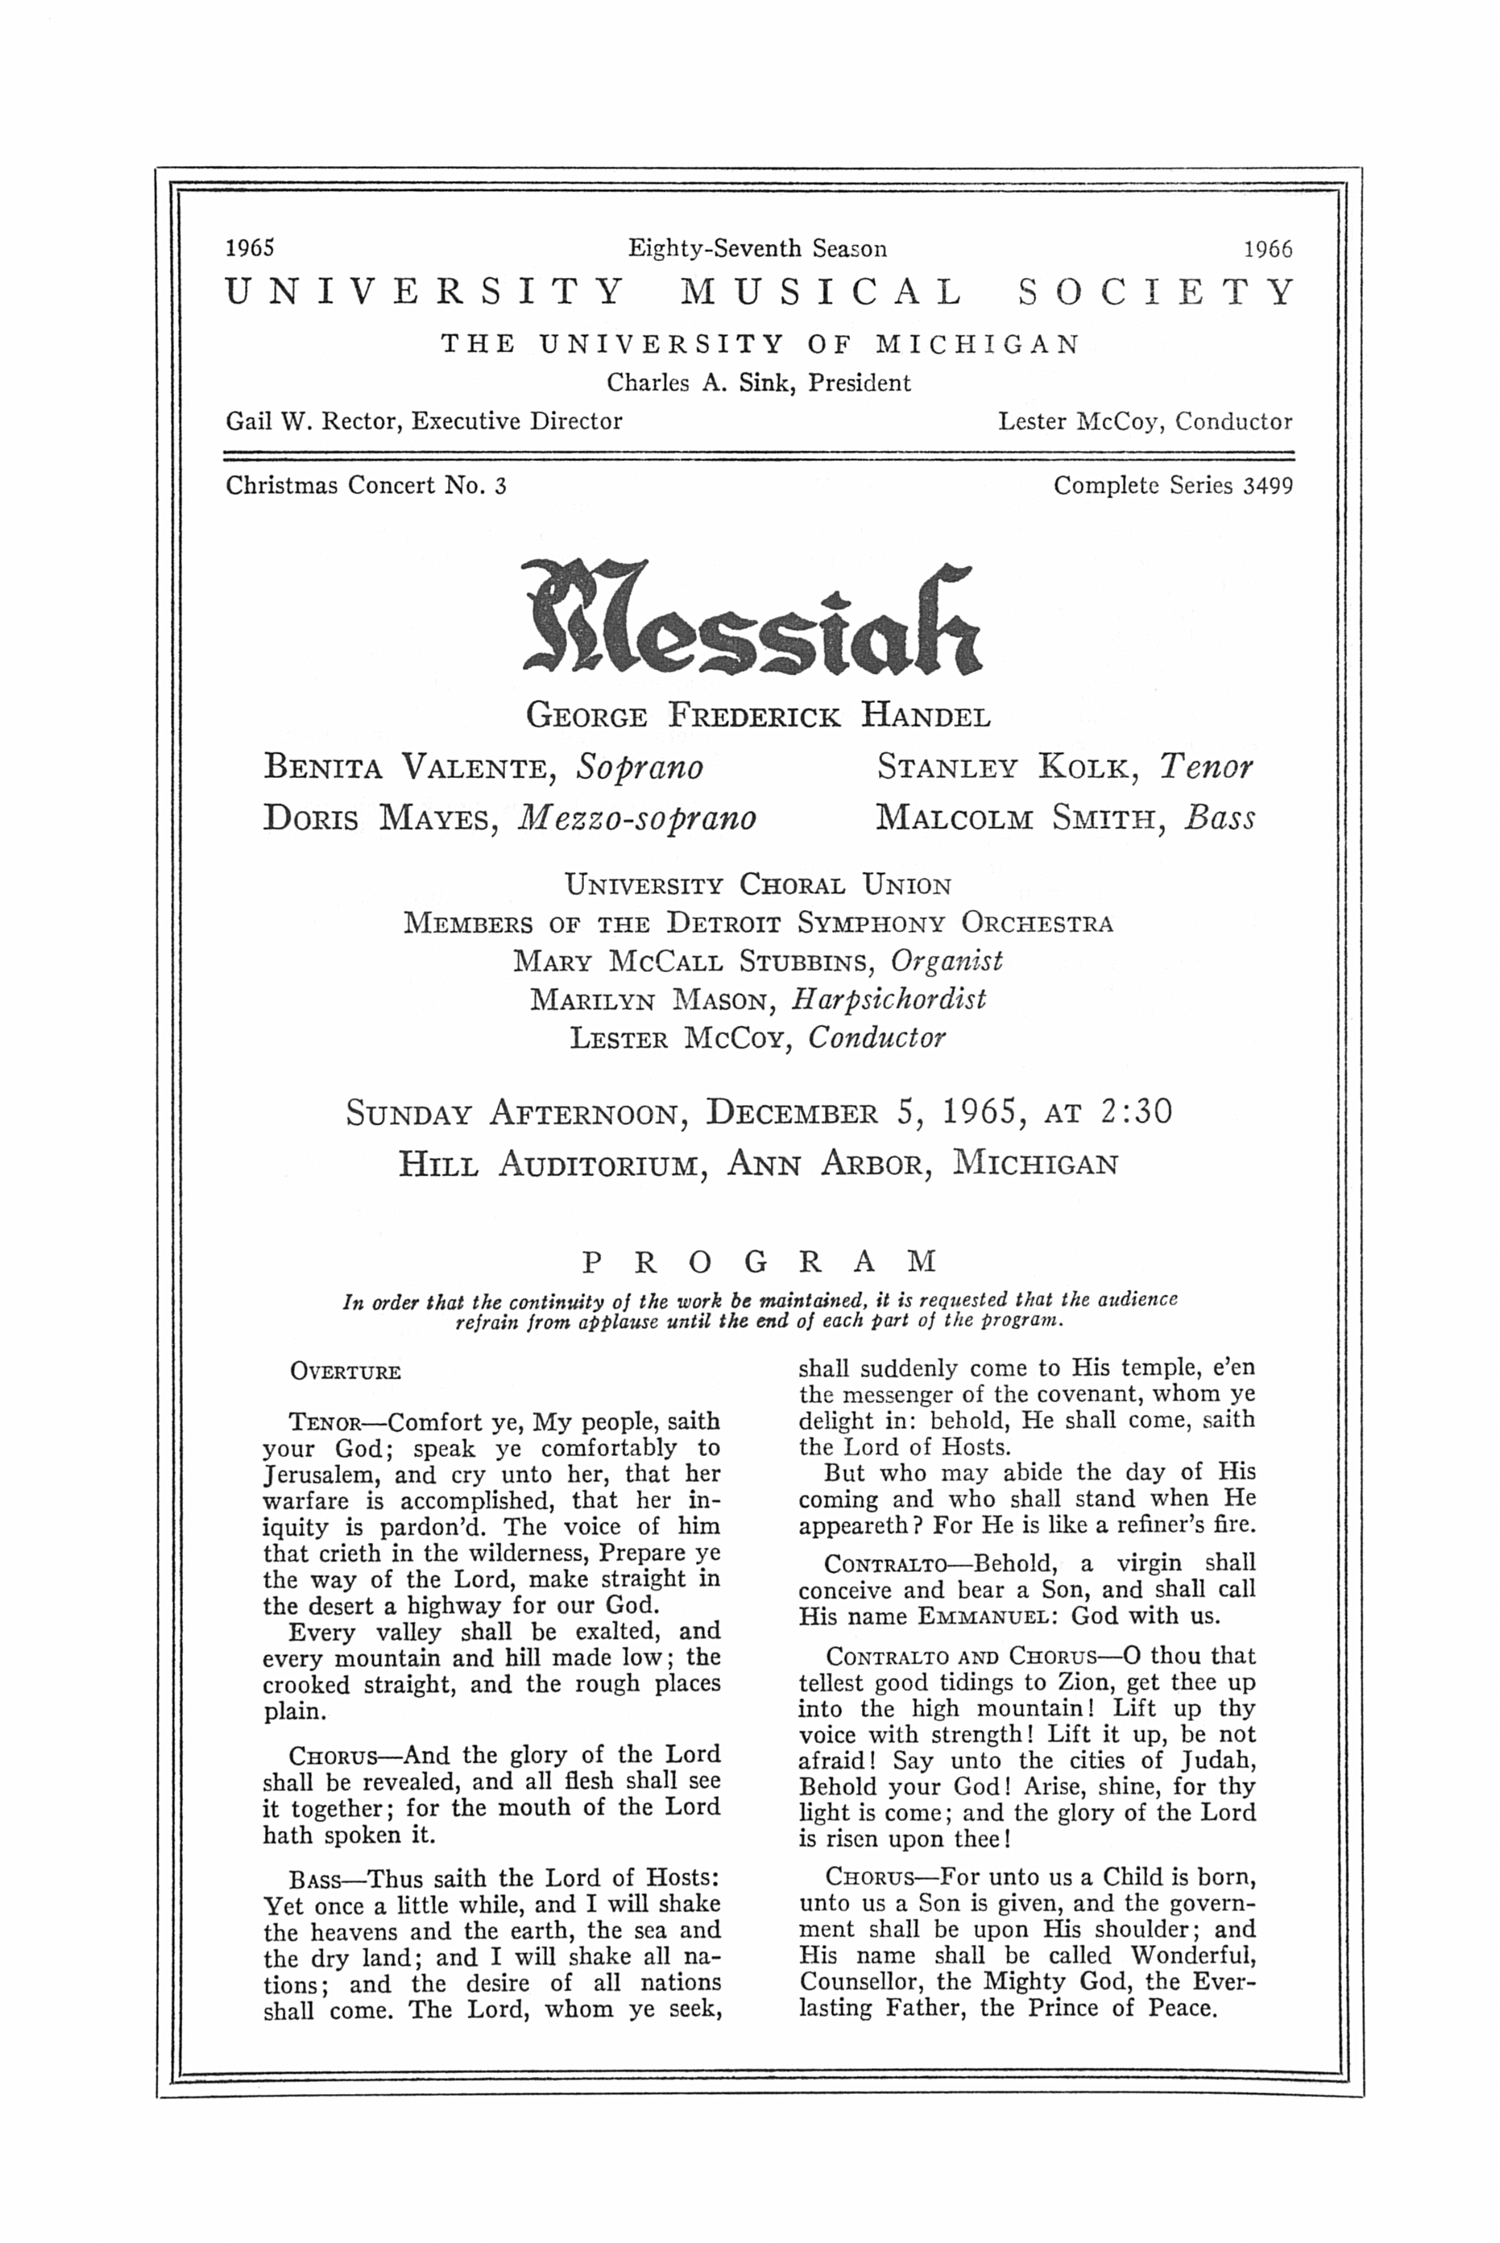 UMS Concert Program, December 5, 1965: Messiah -- George Frederick Handel image